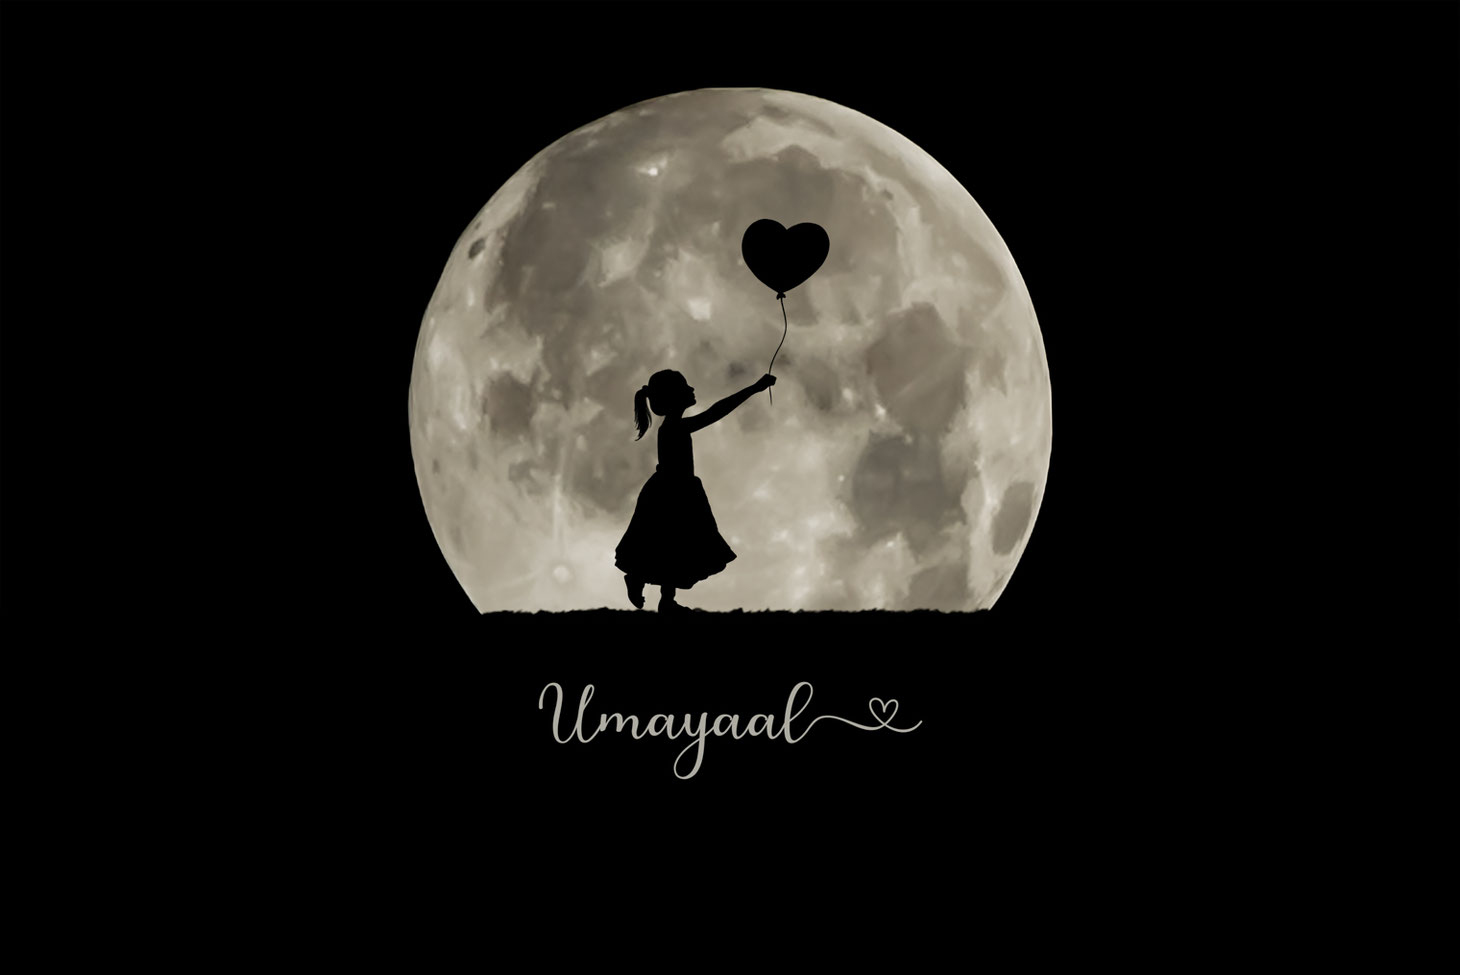 silhouette of girl in a dress holding a heart balloon against a large full moon. Under the moon in script text with a heart at the end reads Umayaal.